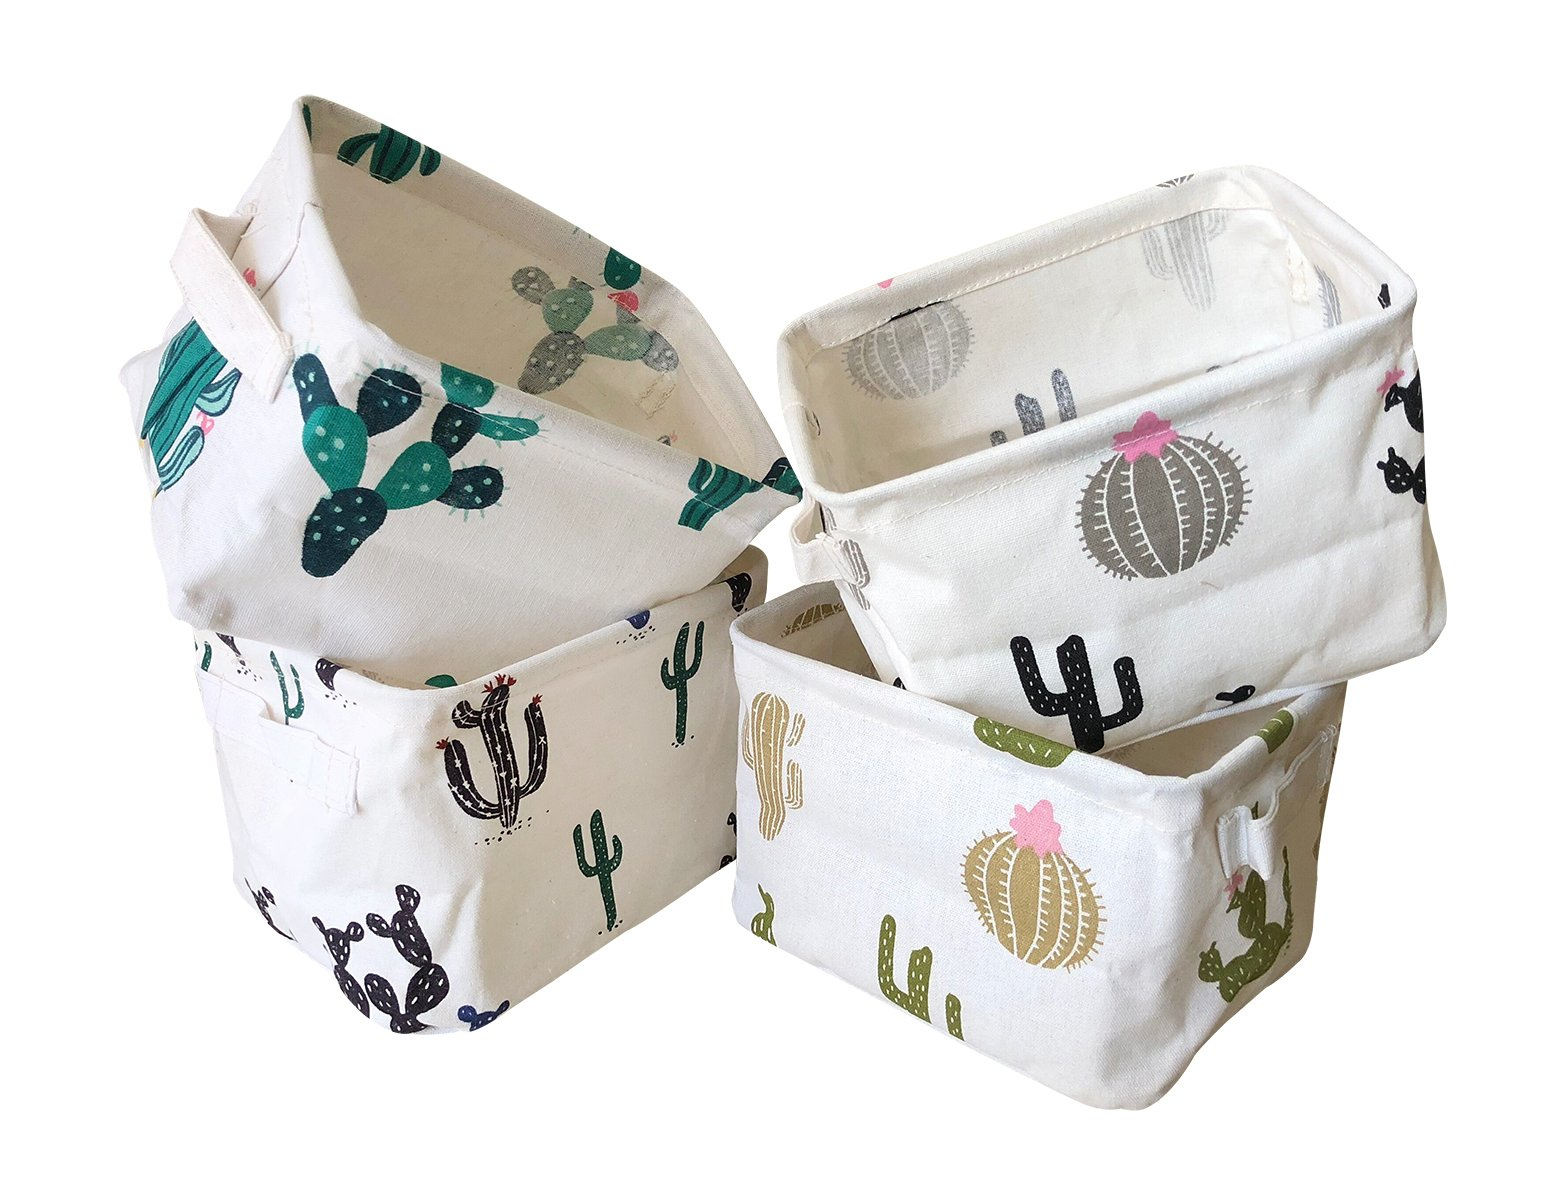 Storage Bins Foldable Cactus Storage Basket for Nursery, Kids Toys, Makeup, Small Items, Desktop Organization, Set of 4 (Cream)